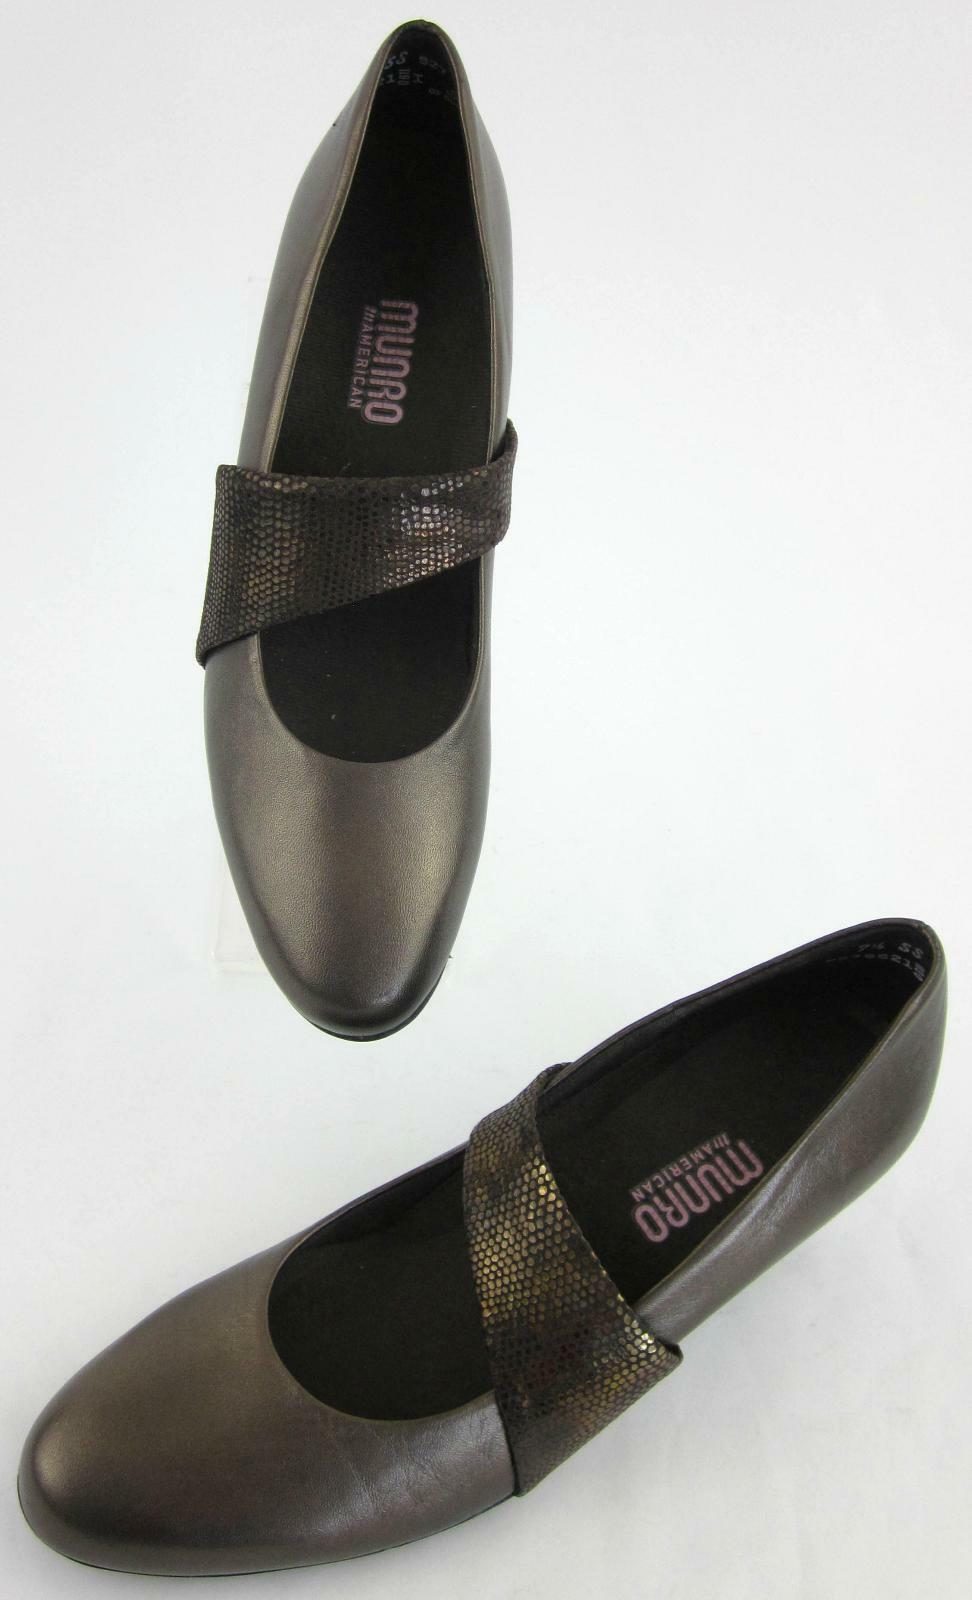 NEW  Munro American Round Pumps Toe Mary Jane Niedrig Pumps Round Bronze Leder 7.5SS 5771db